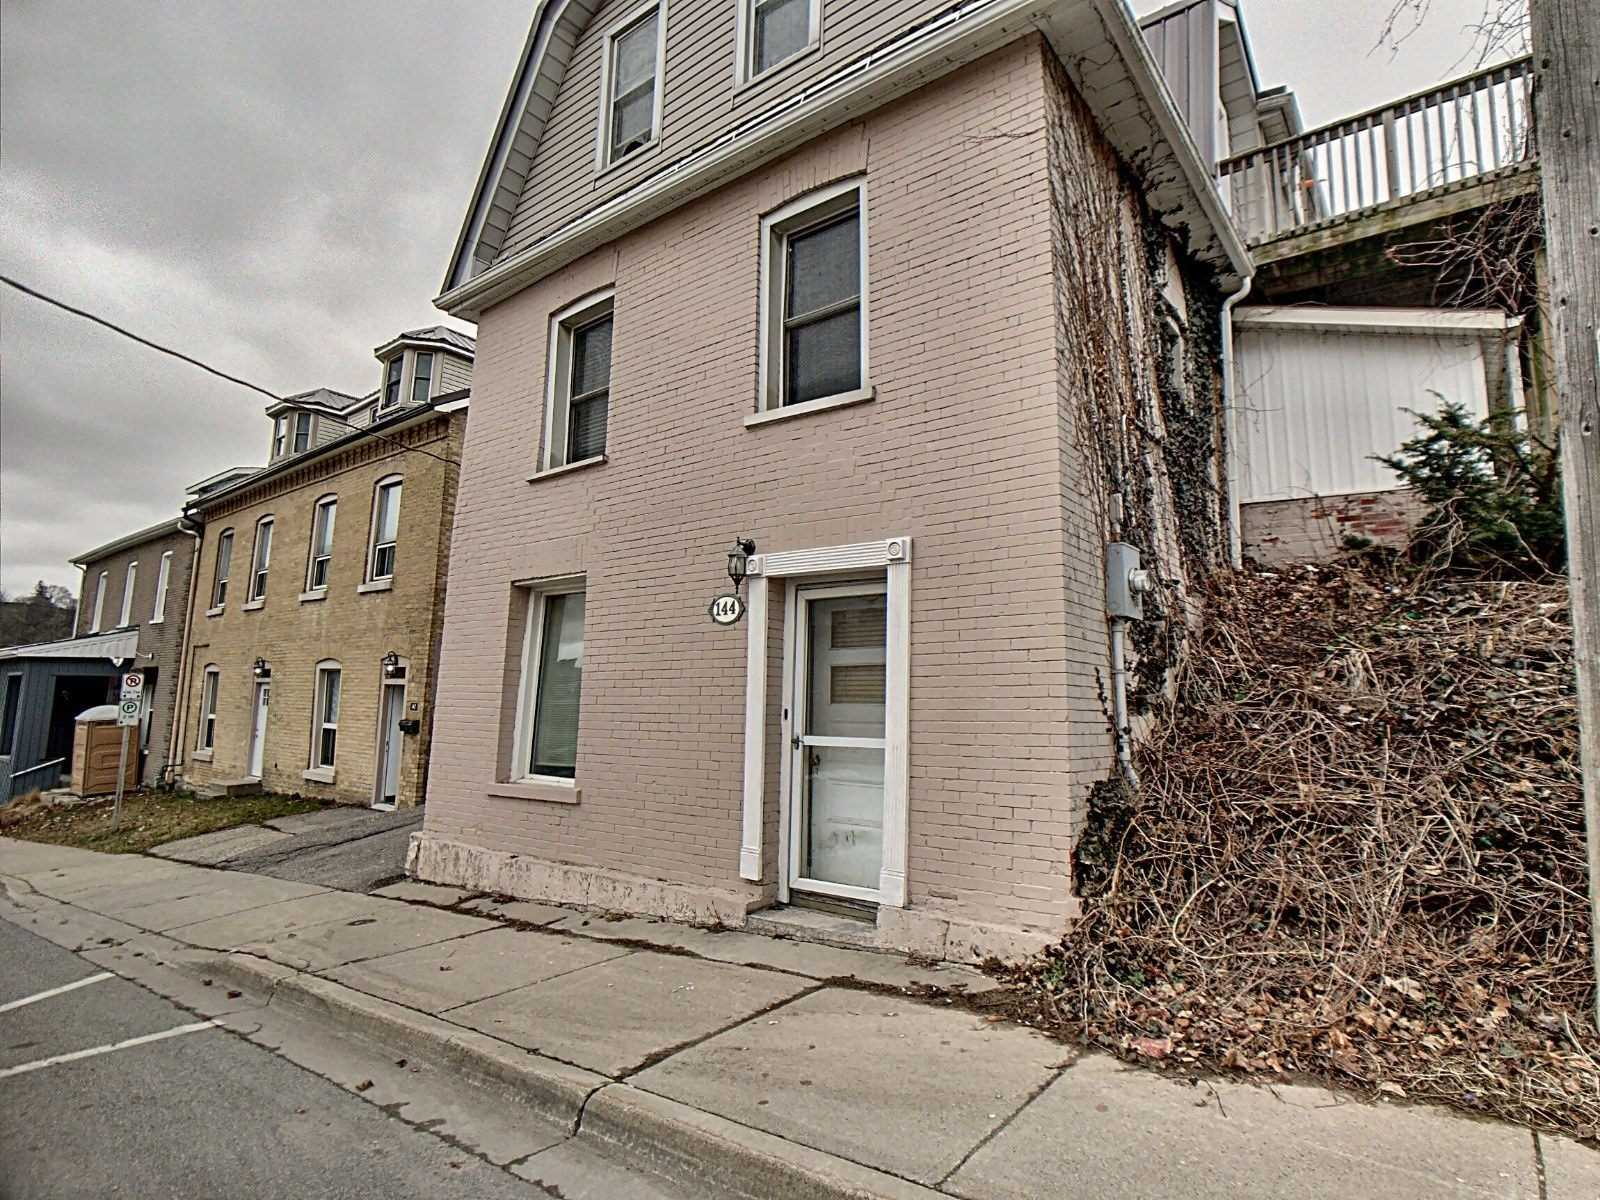 Own A Piece Of History In The Downtown Core Of Canada's Prettiest Little Town's ! Each Unit Has A Full Bathroom And Updated Kitchen. Beautiful Views Of The Grand River And Town Of Paris. Walk To Restaurants, Cafes, Shopping, Library. Also Includes A Detached Garage And Private Parking.